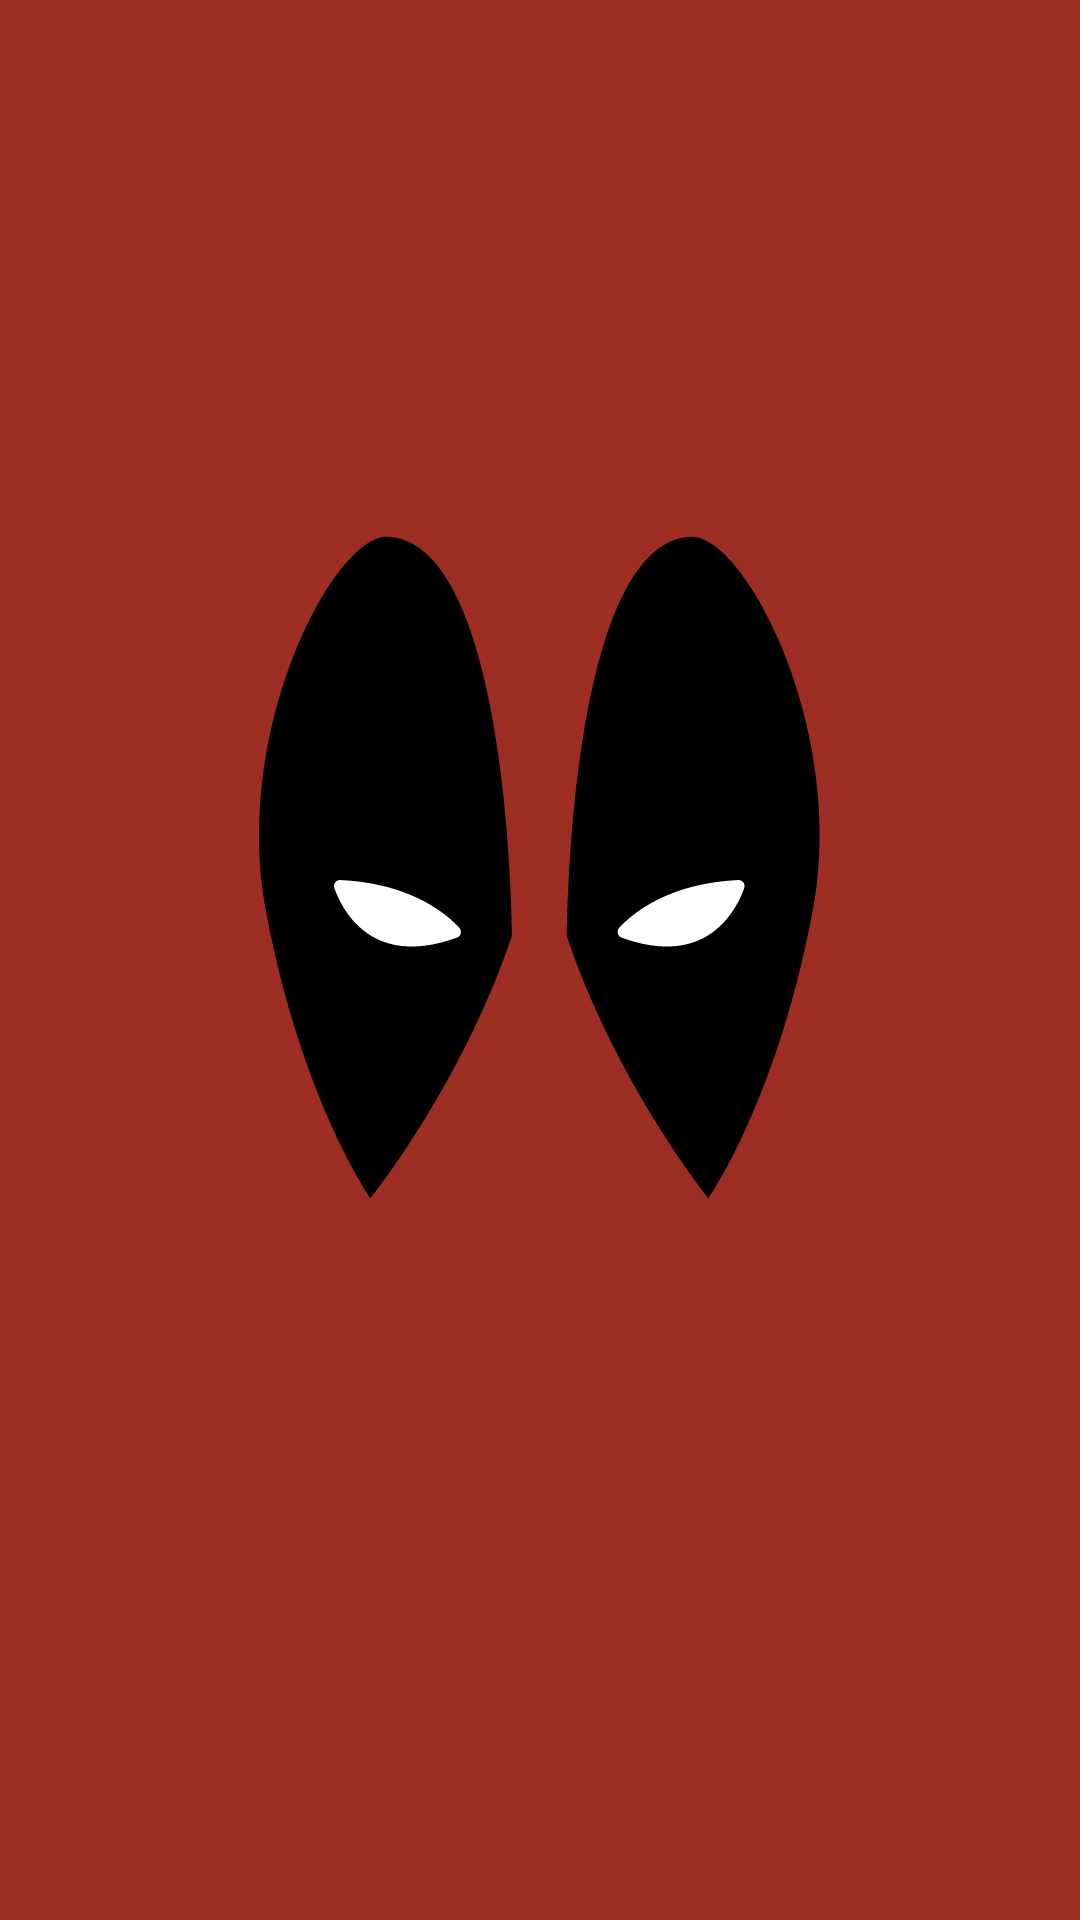 Deadpool Mobile Phone Wallpaper Vectorkotor